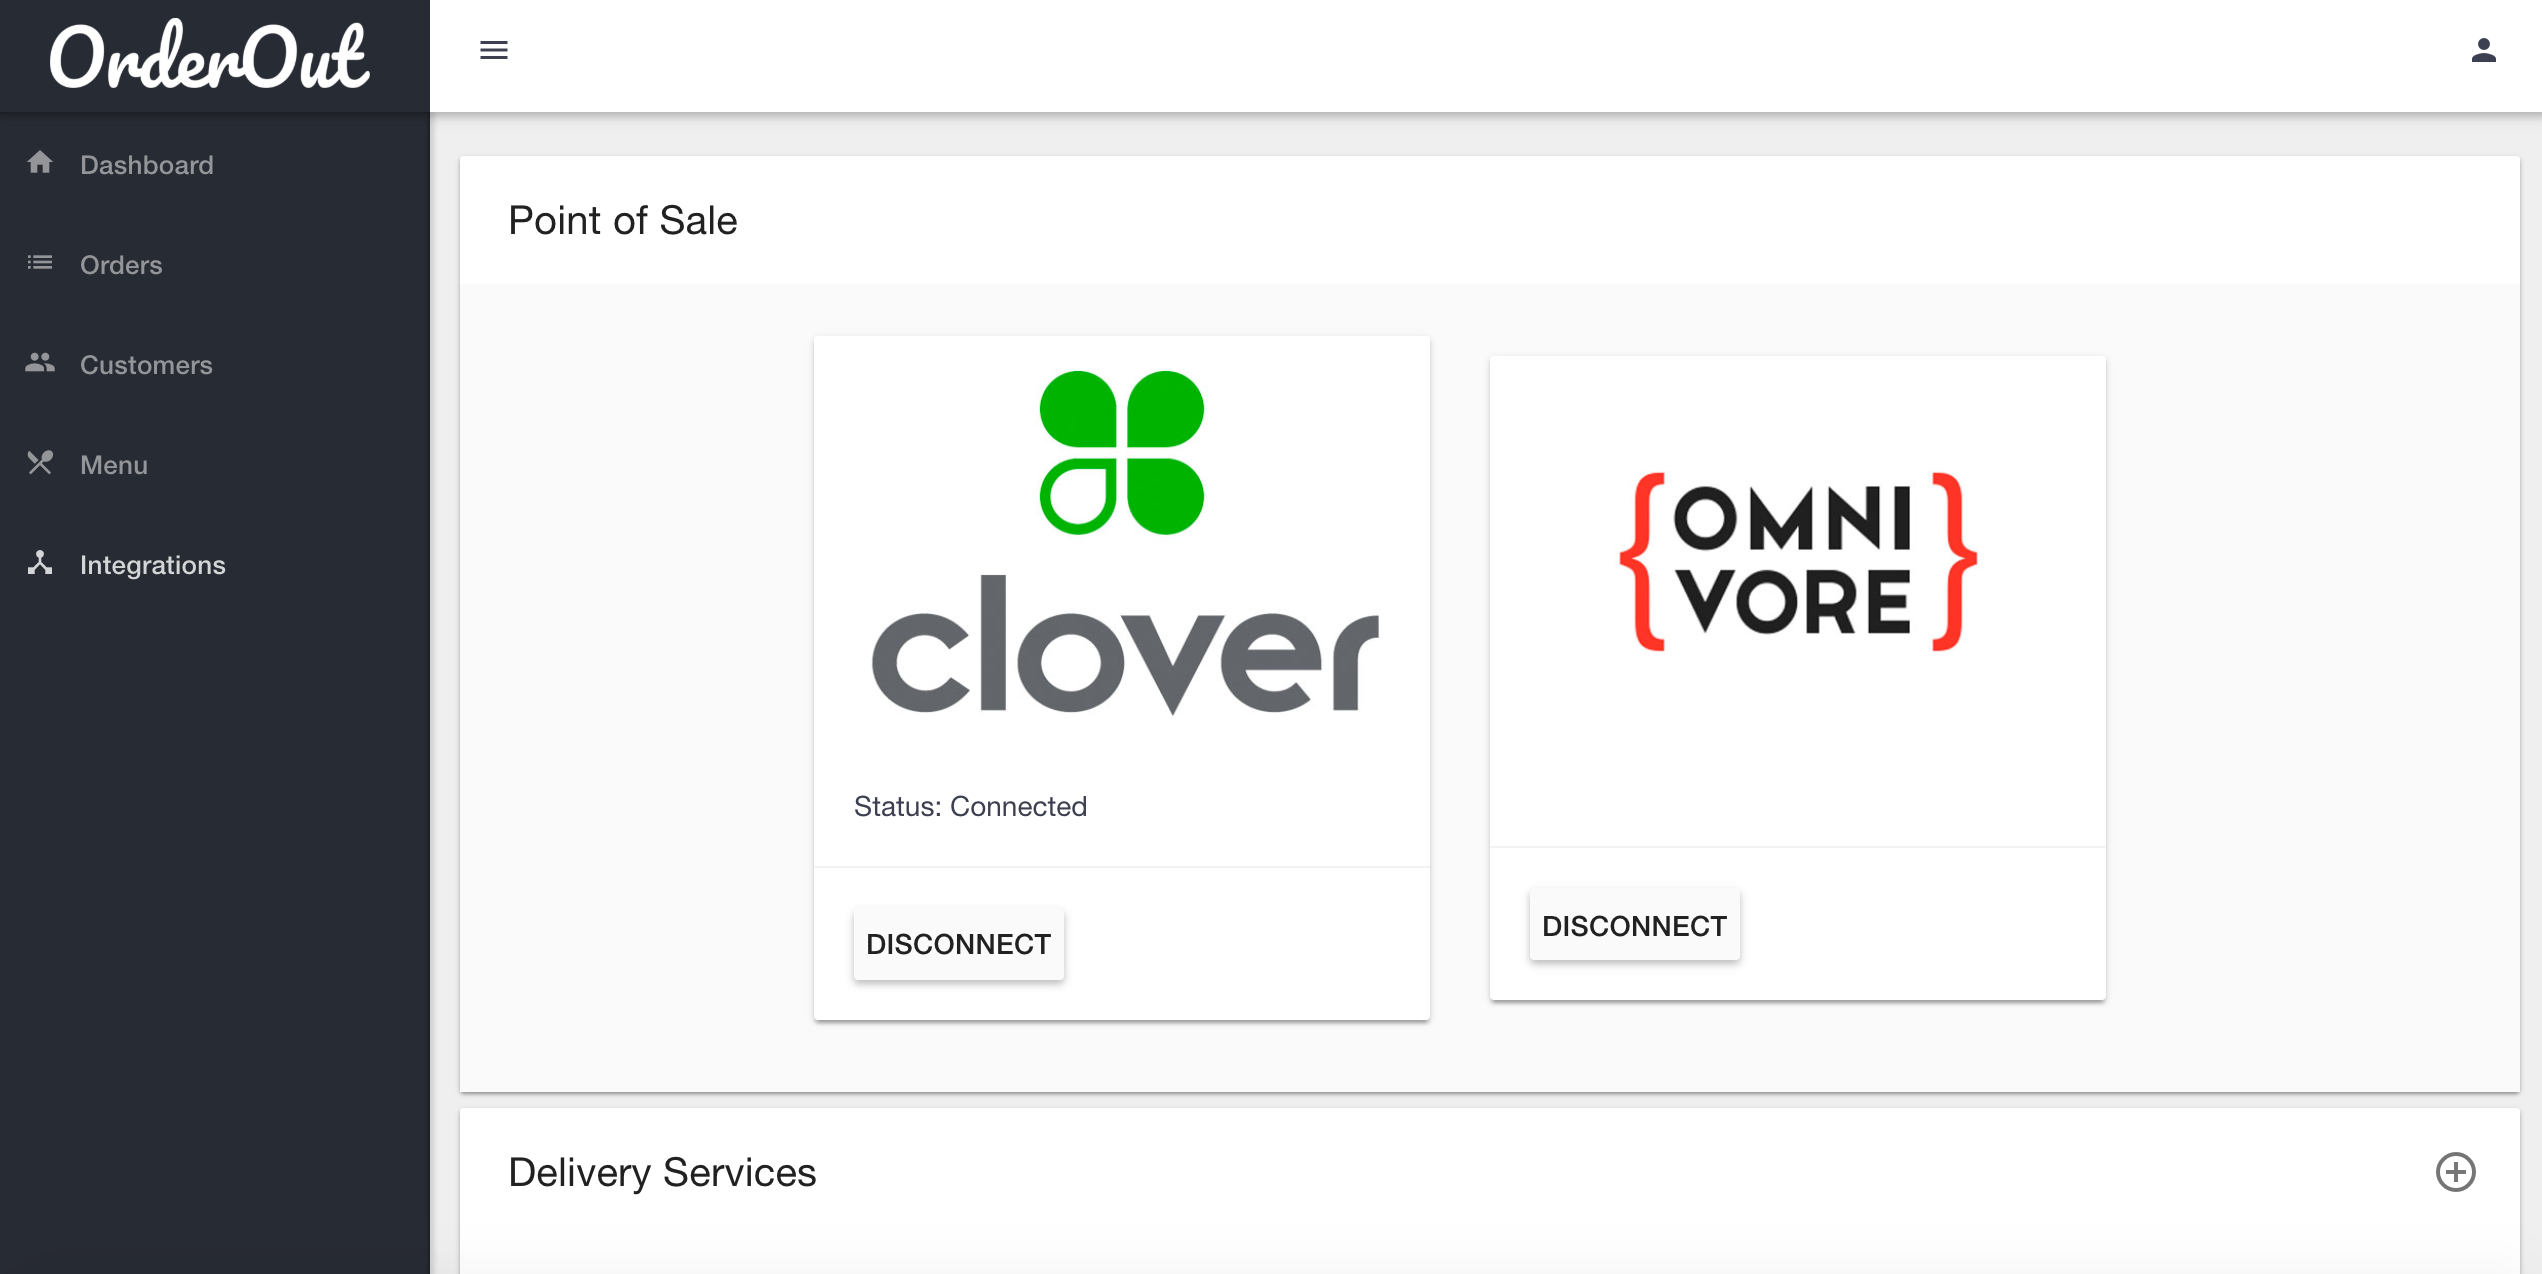 Point of sale integrations